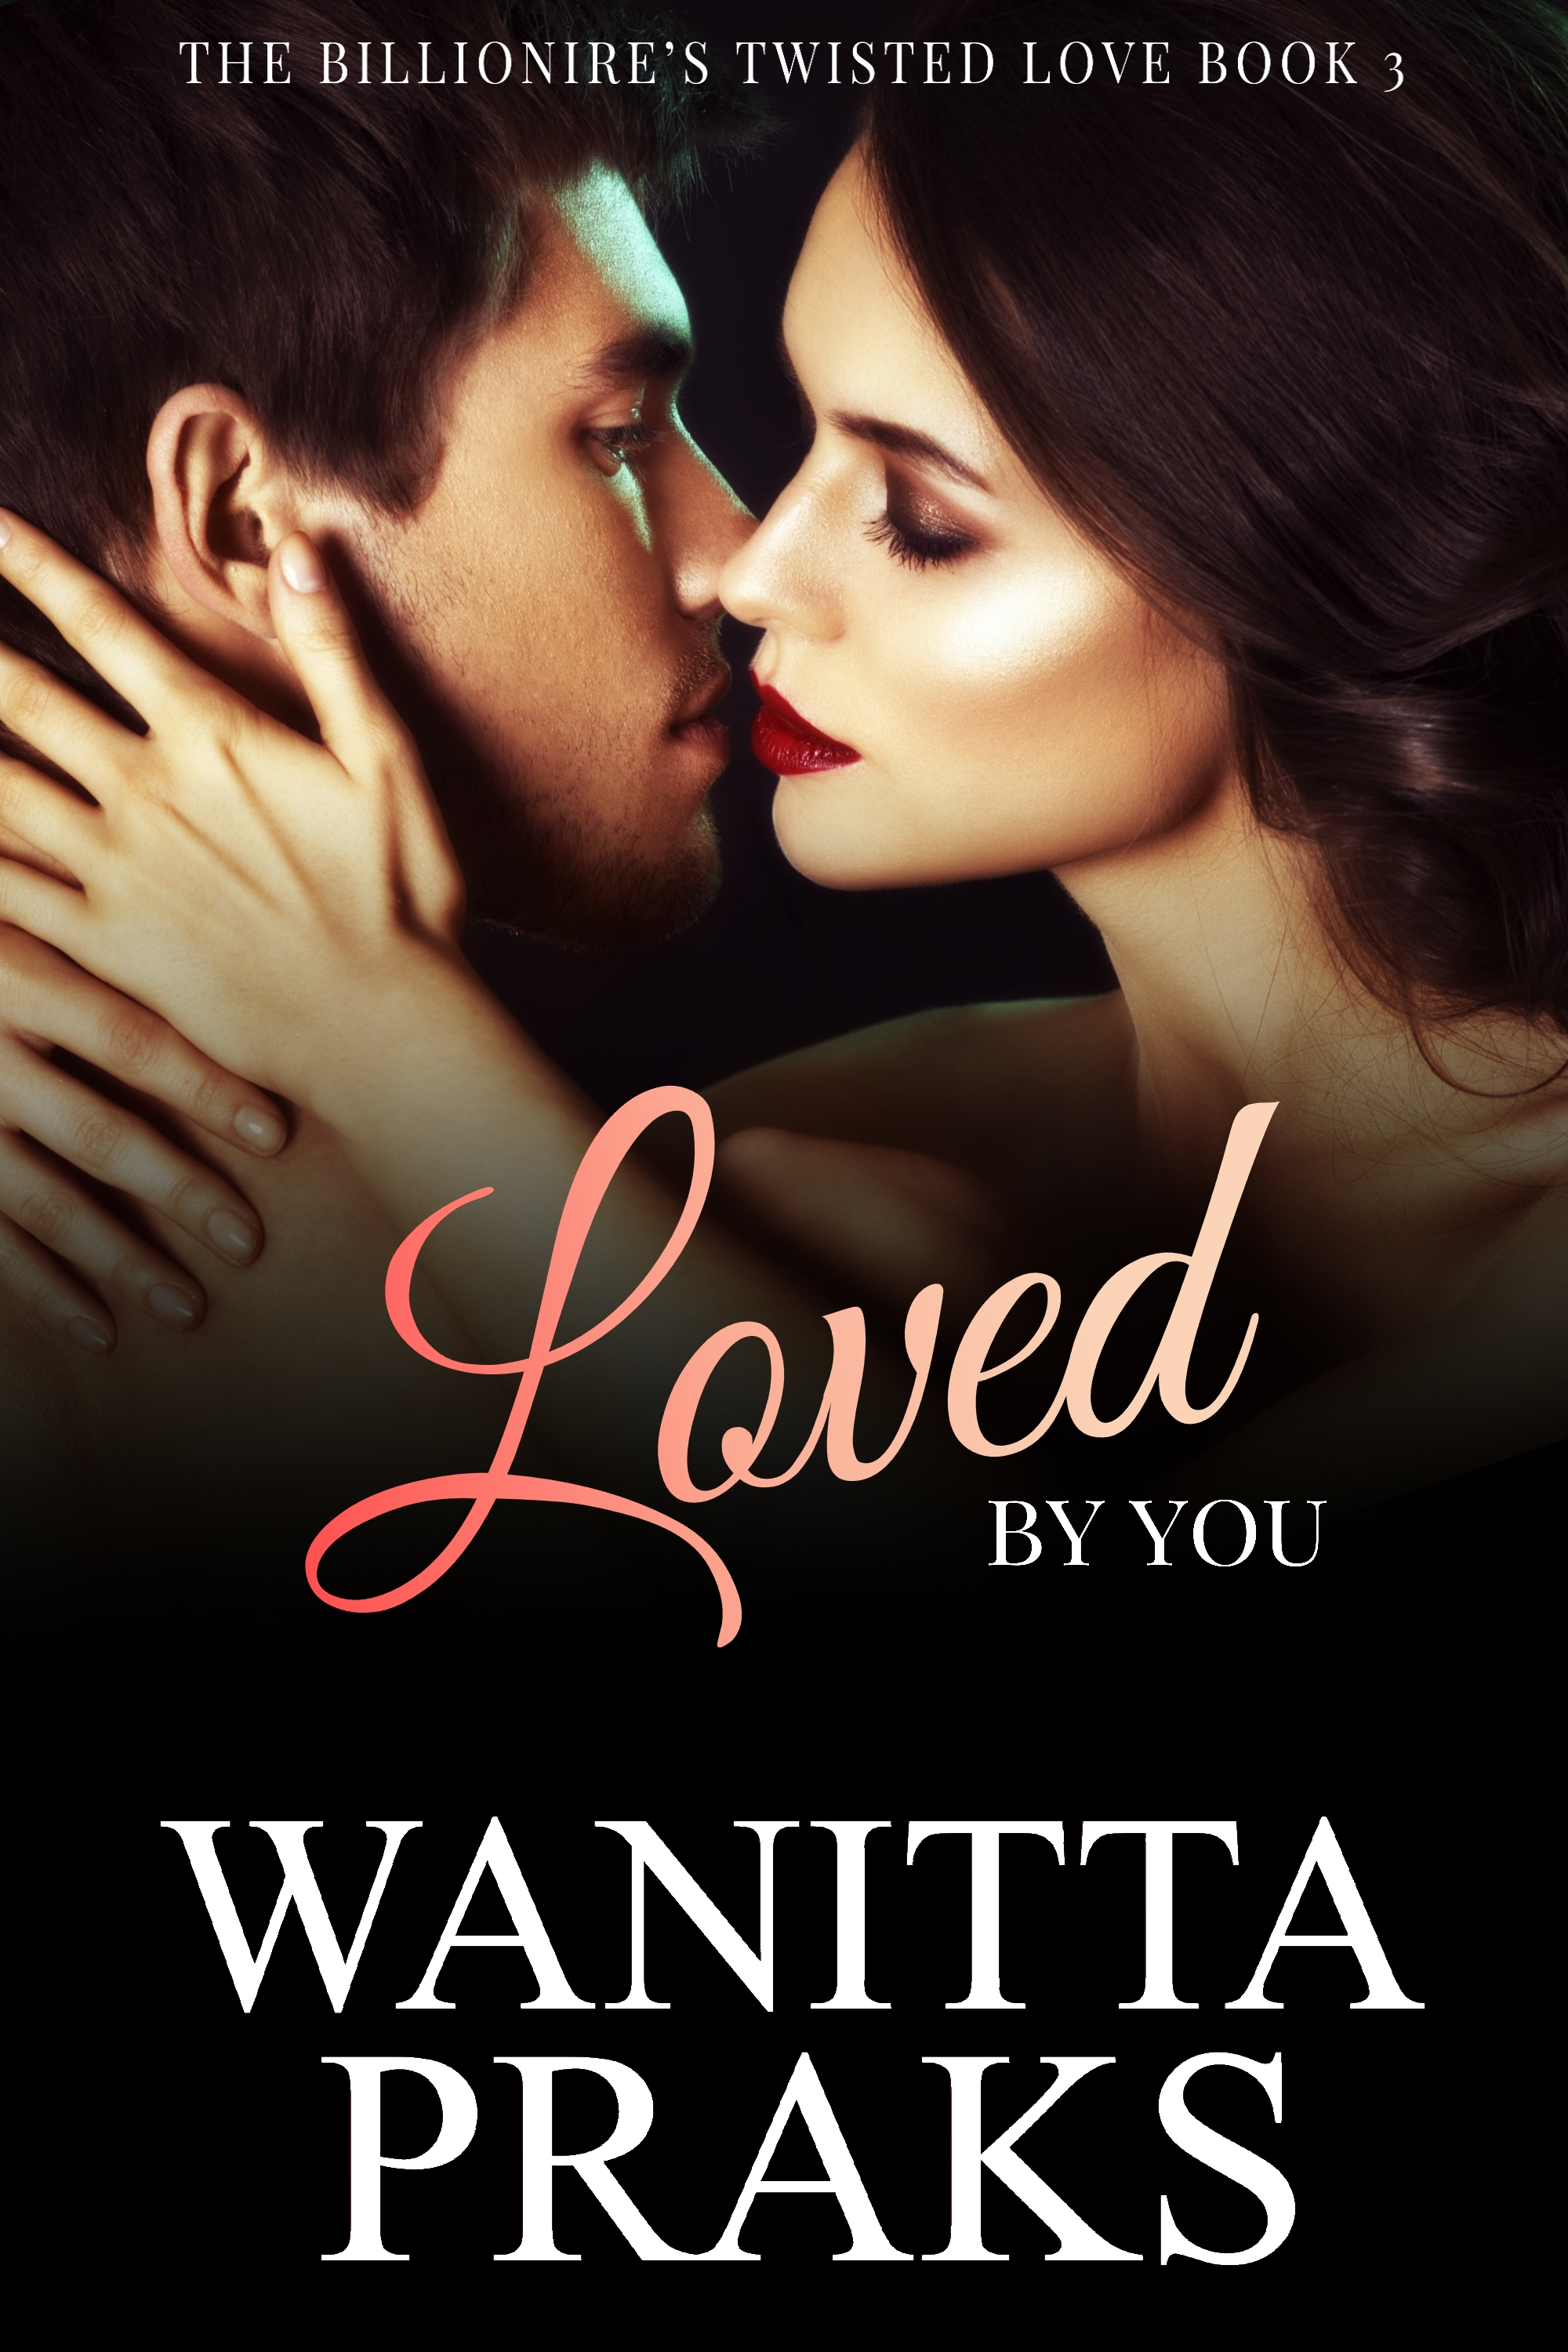 The Billionaire's Twisted Love Book 3: Loved by You, an Ebook by Wanitta  Praks